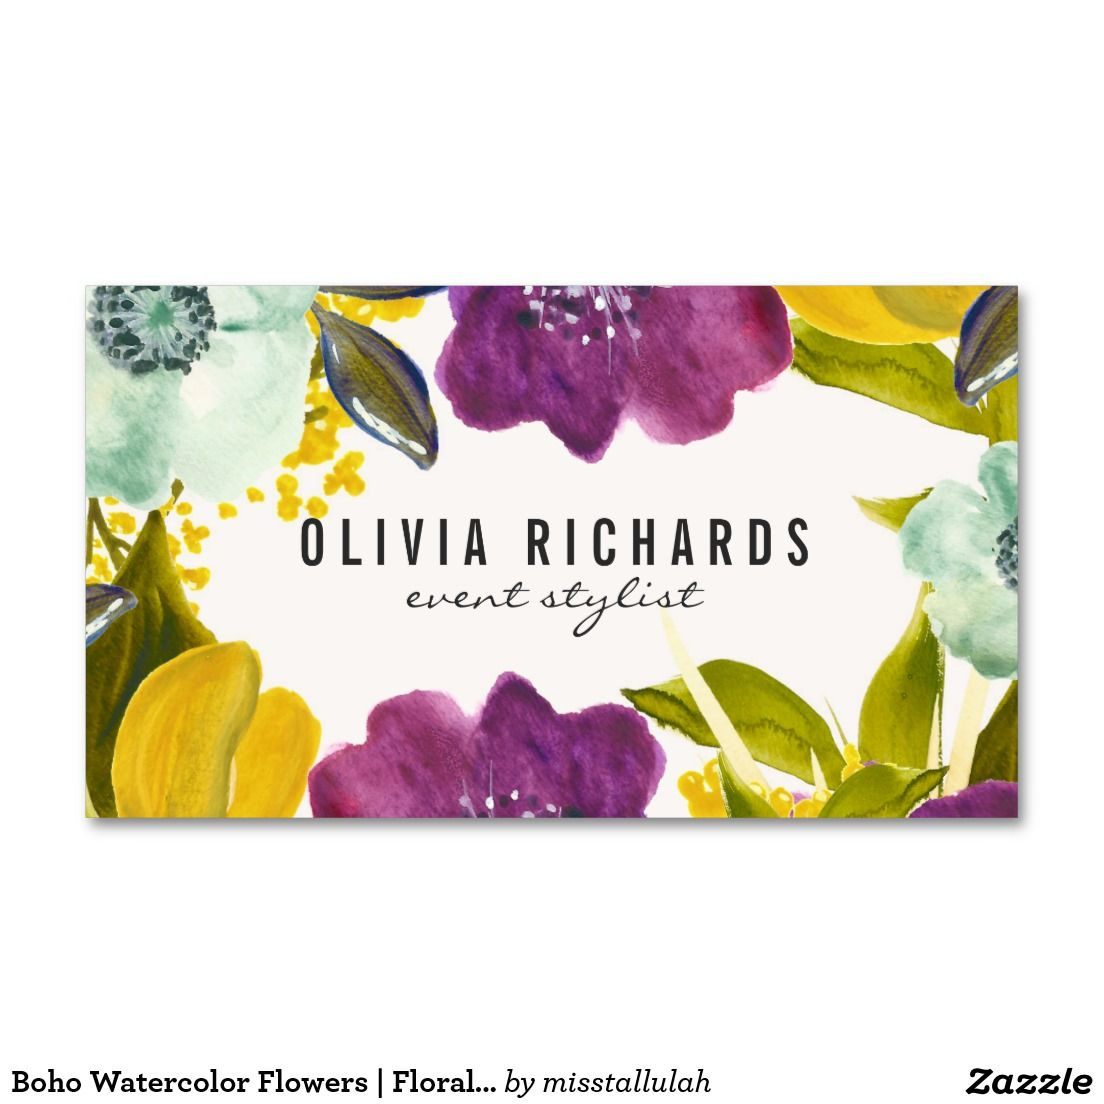 Boho Watercolor Flowers | Floral Business Card | Chic Business Cards ...